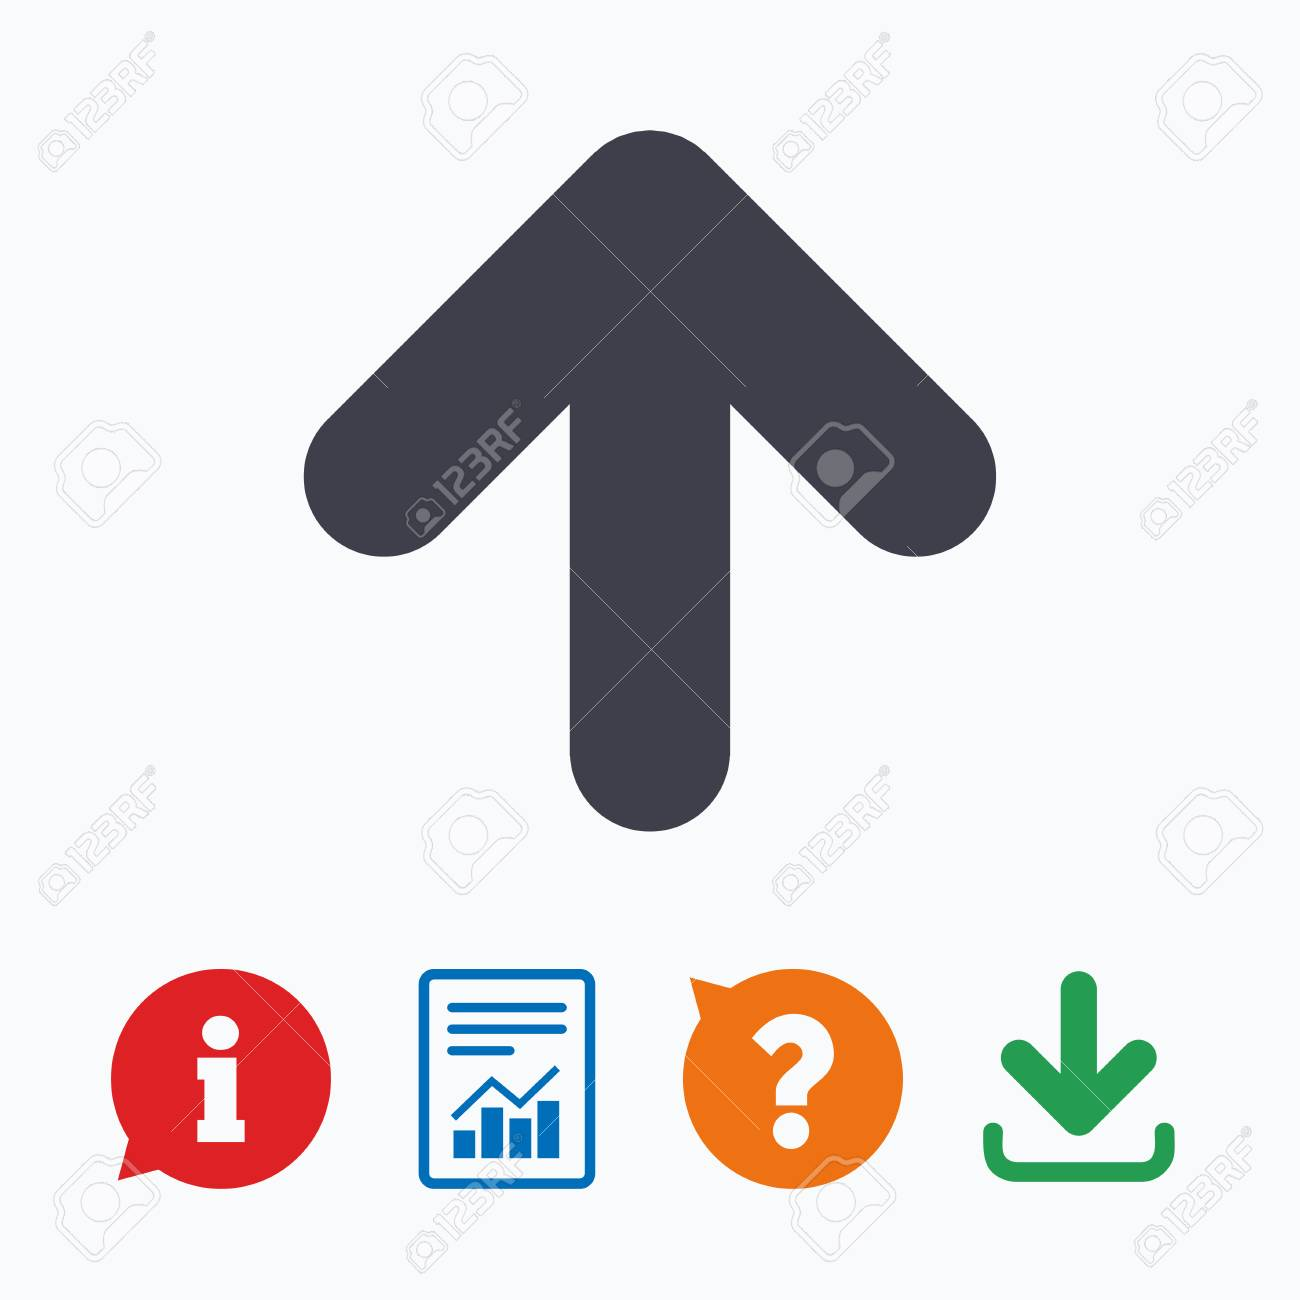 Upload sign icon. Upload button. Load symbol. Information think bubble,  question mark